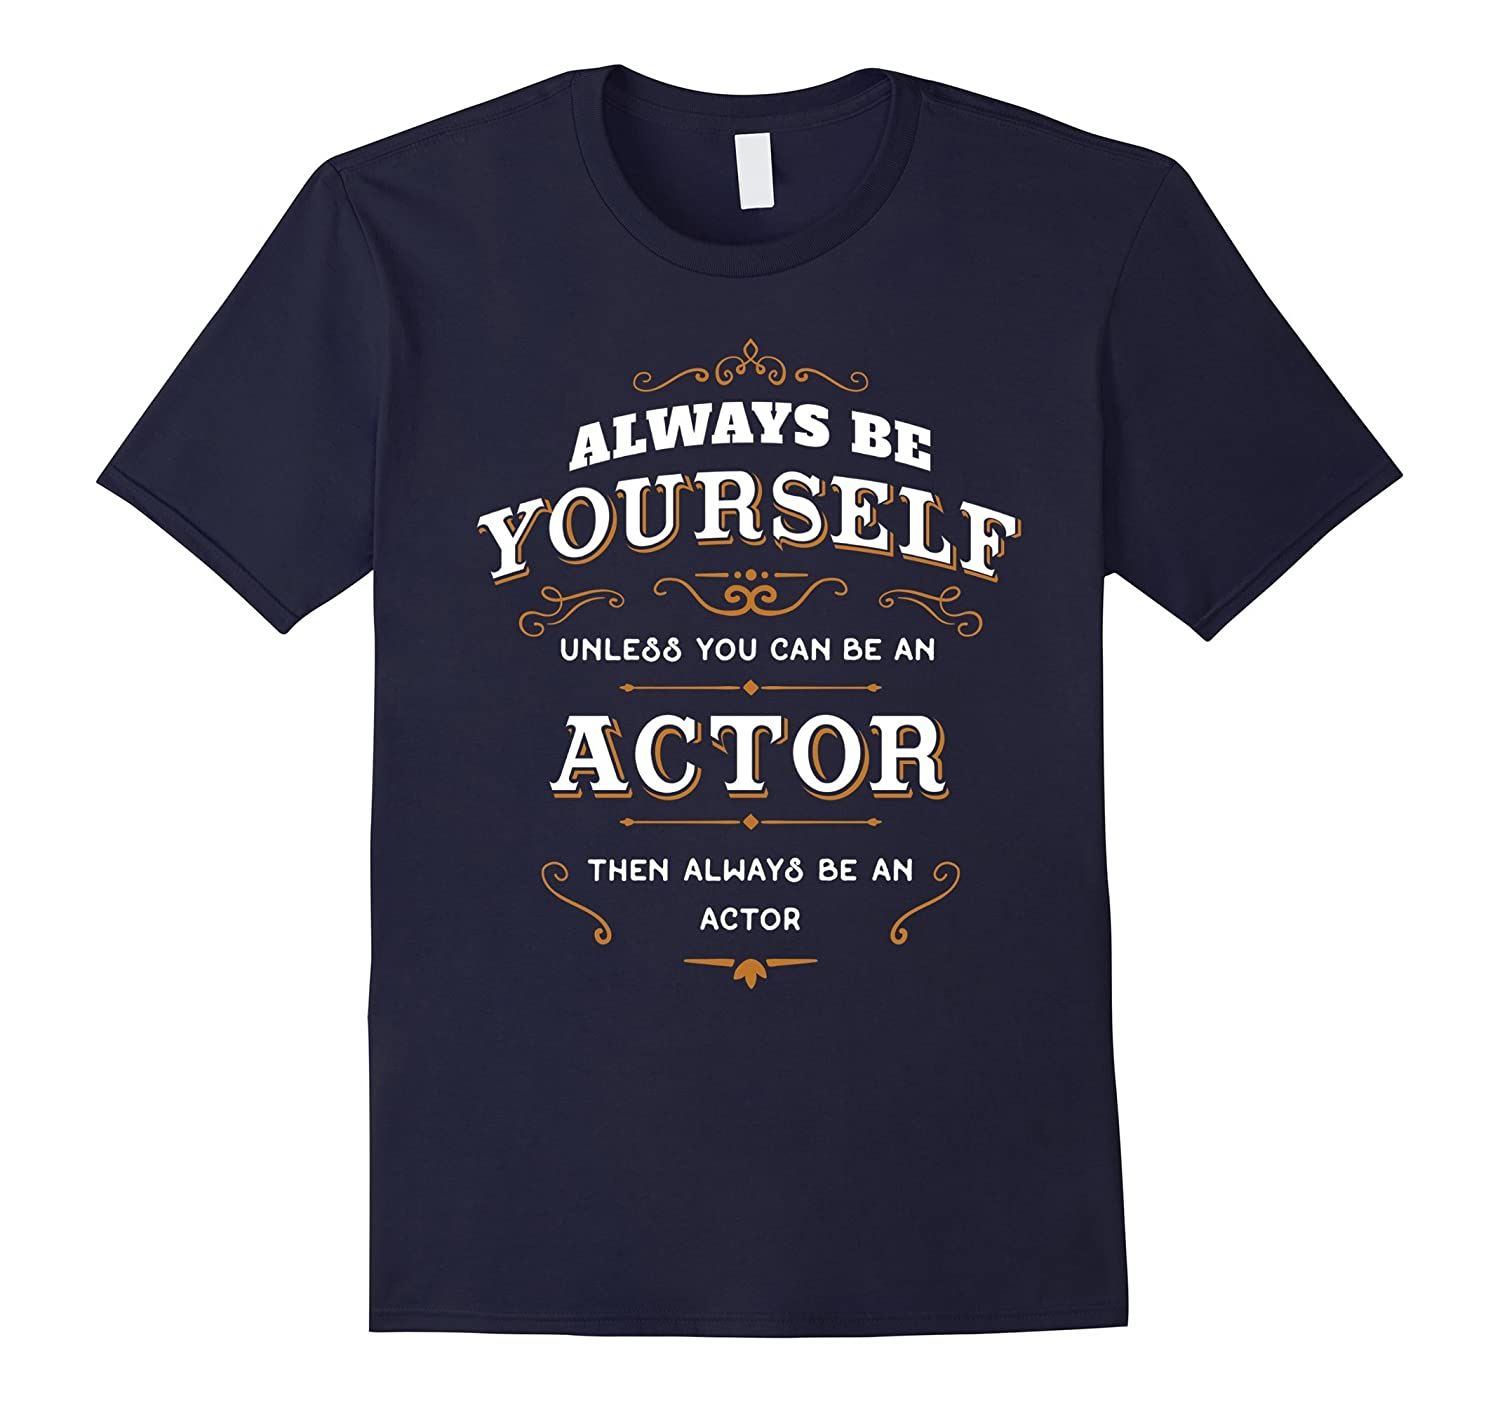 Actor T Shirt Be Yourself Unless You Can be an Actor-TH